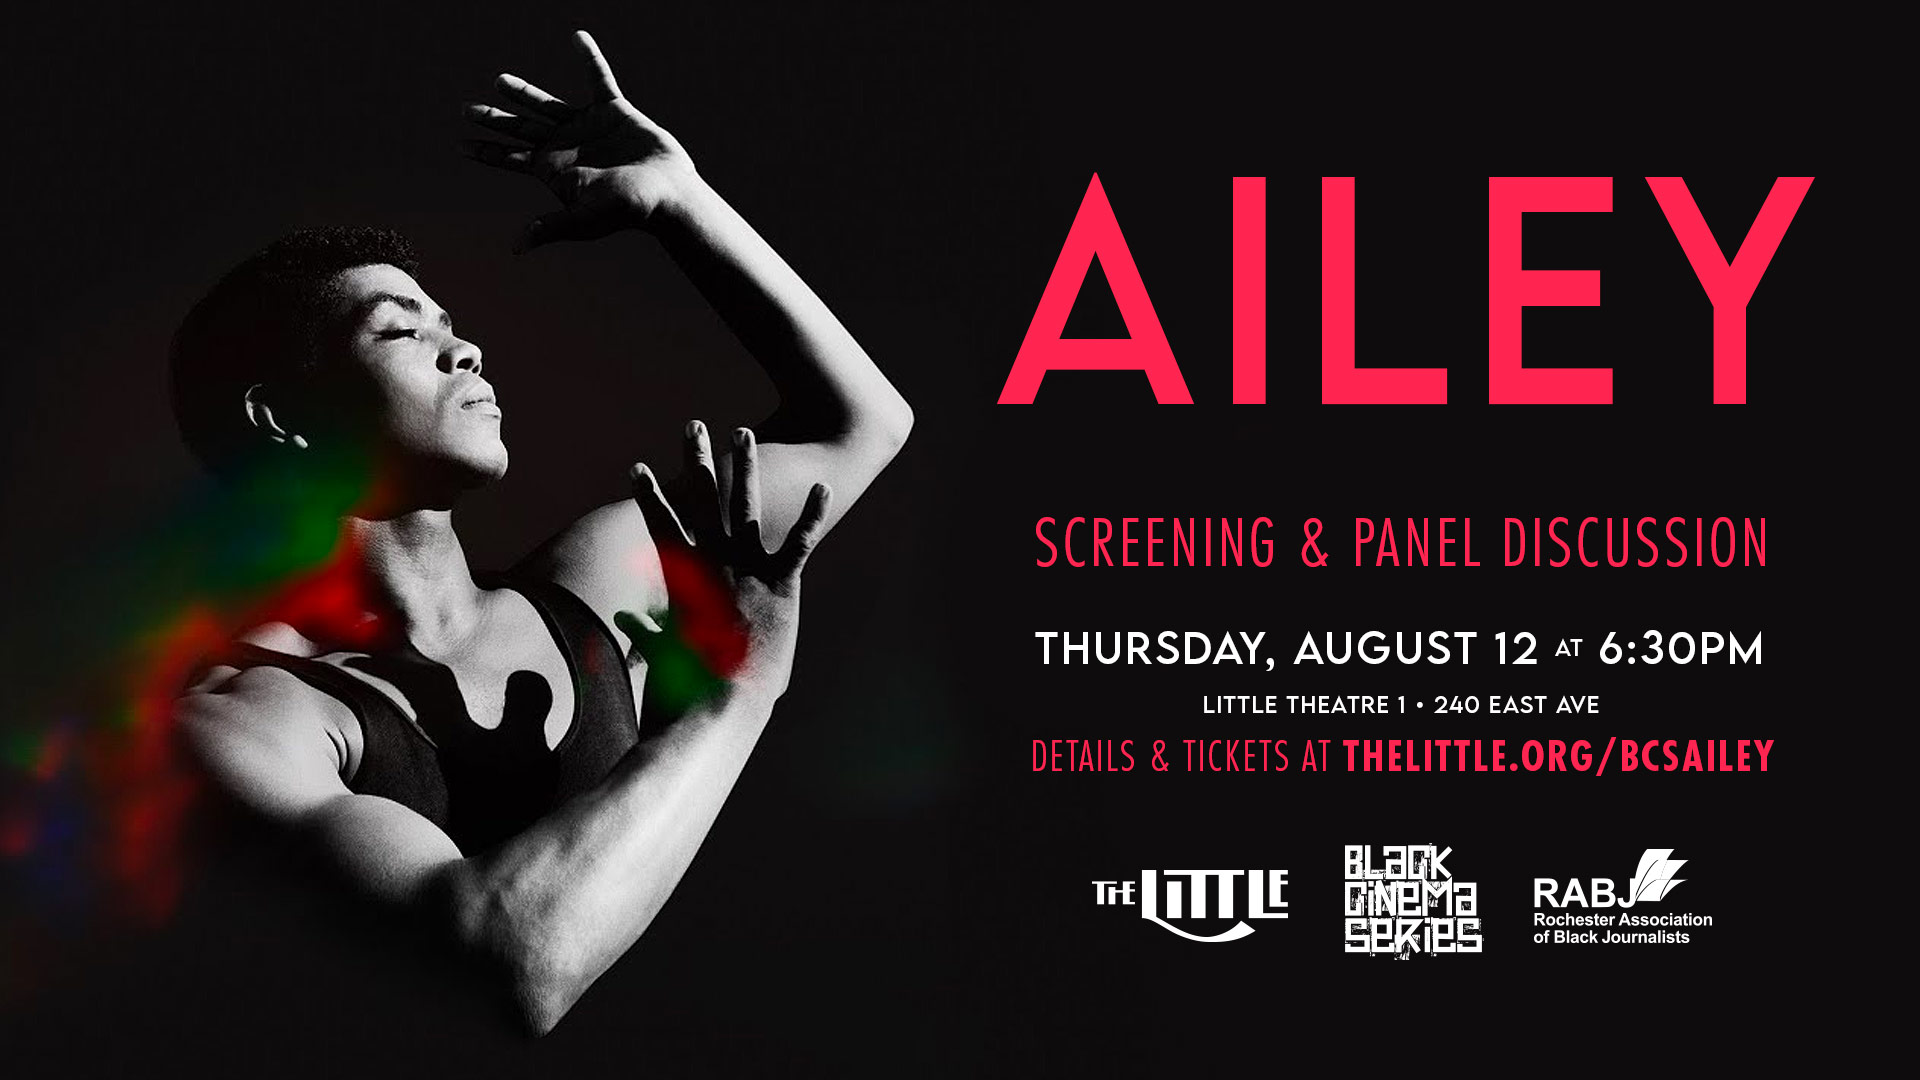 Ailey screening and panel